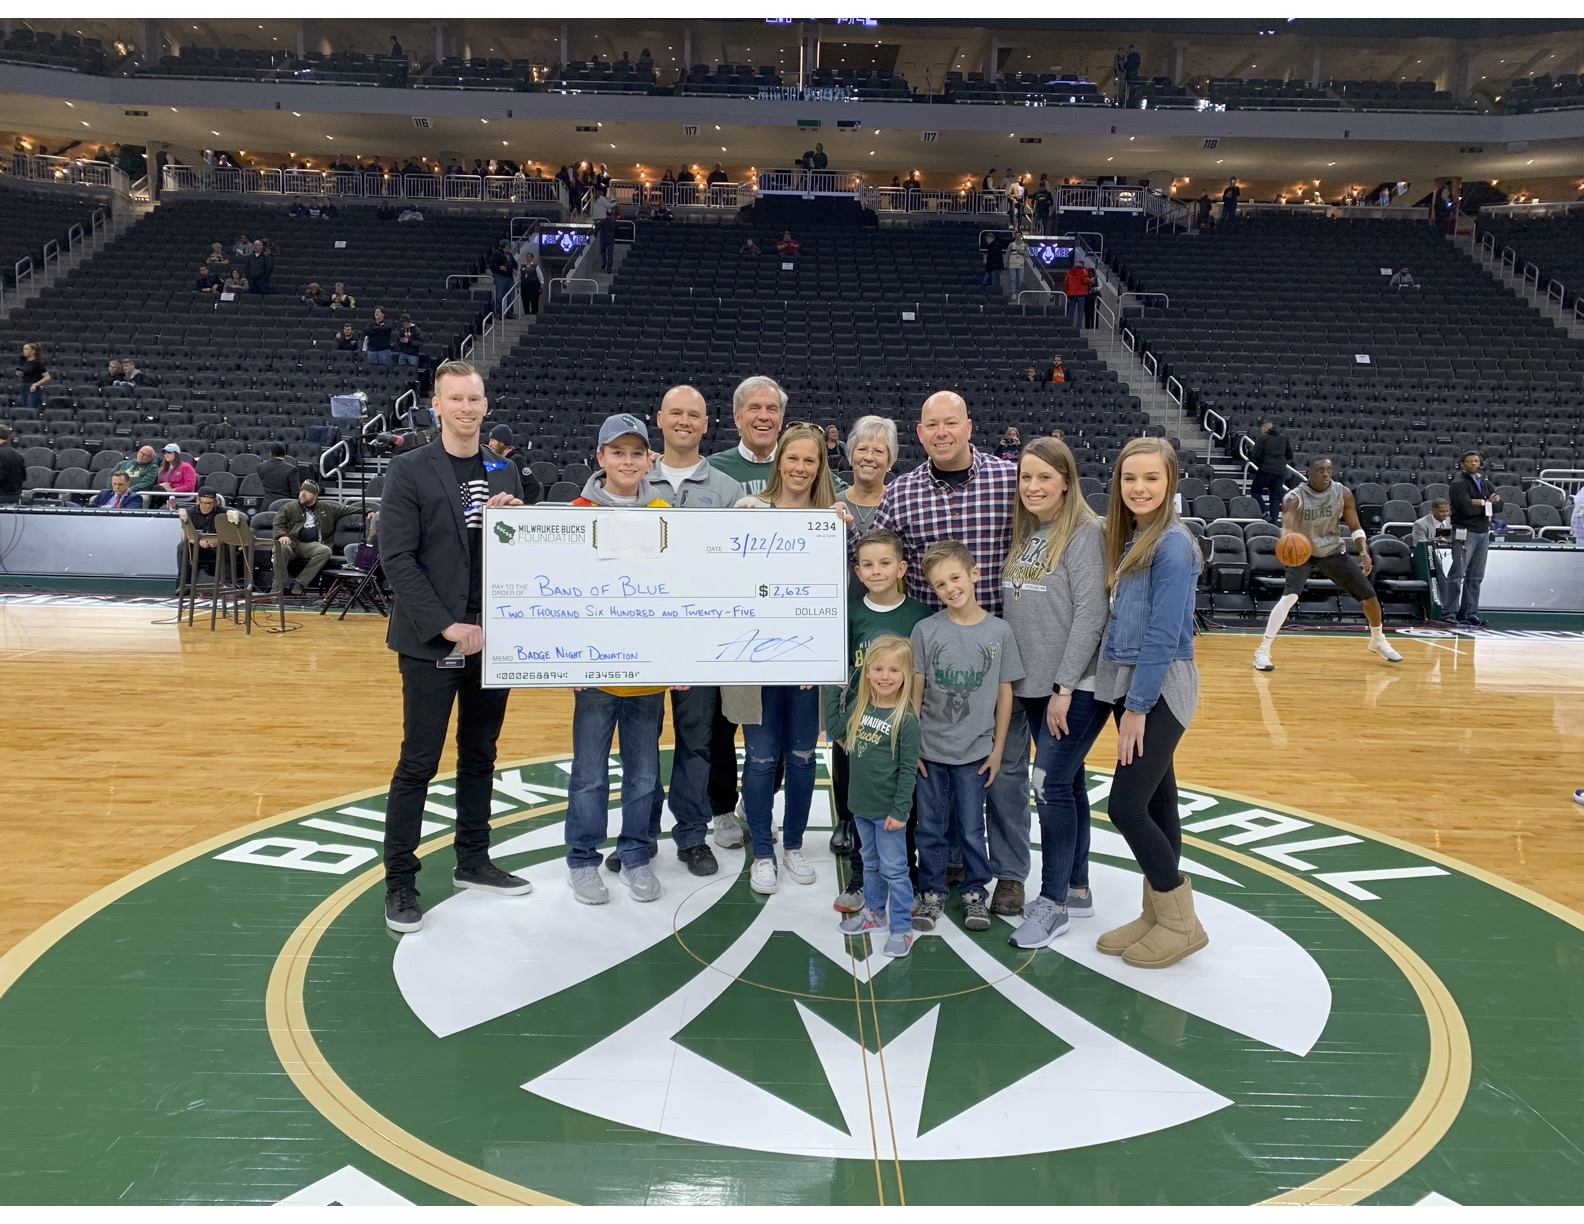 Band of blue getting a check at the Bucks game.